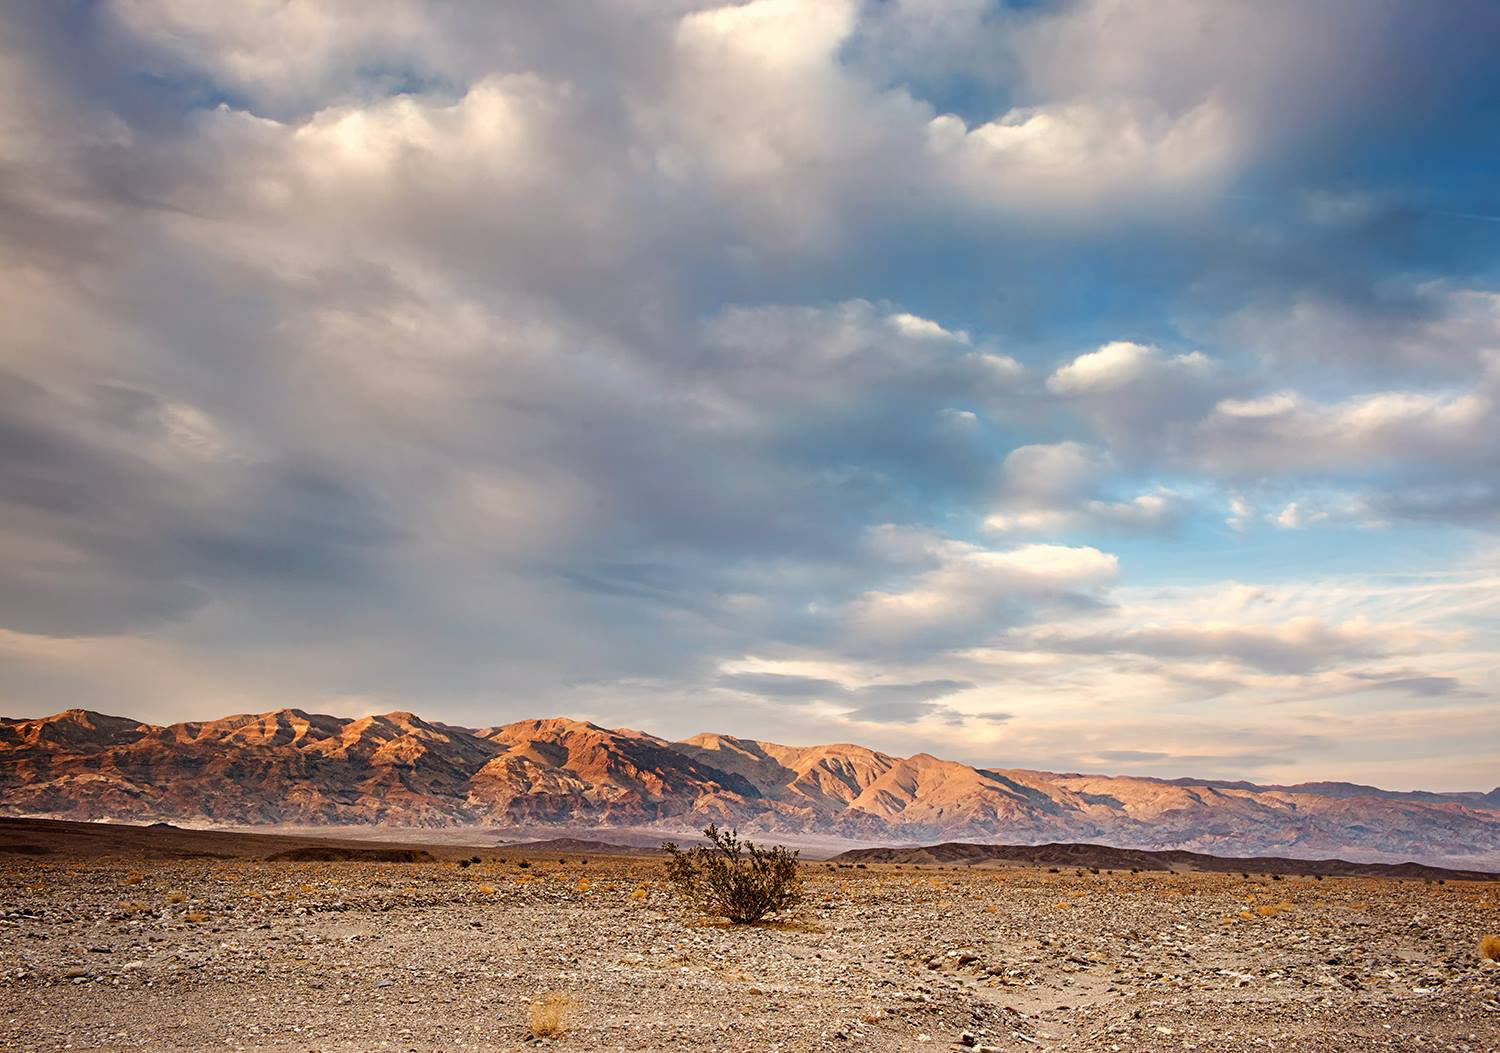 desert and mountains by jody miller